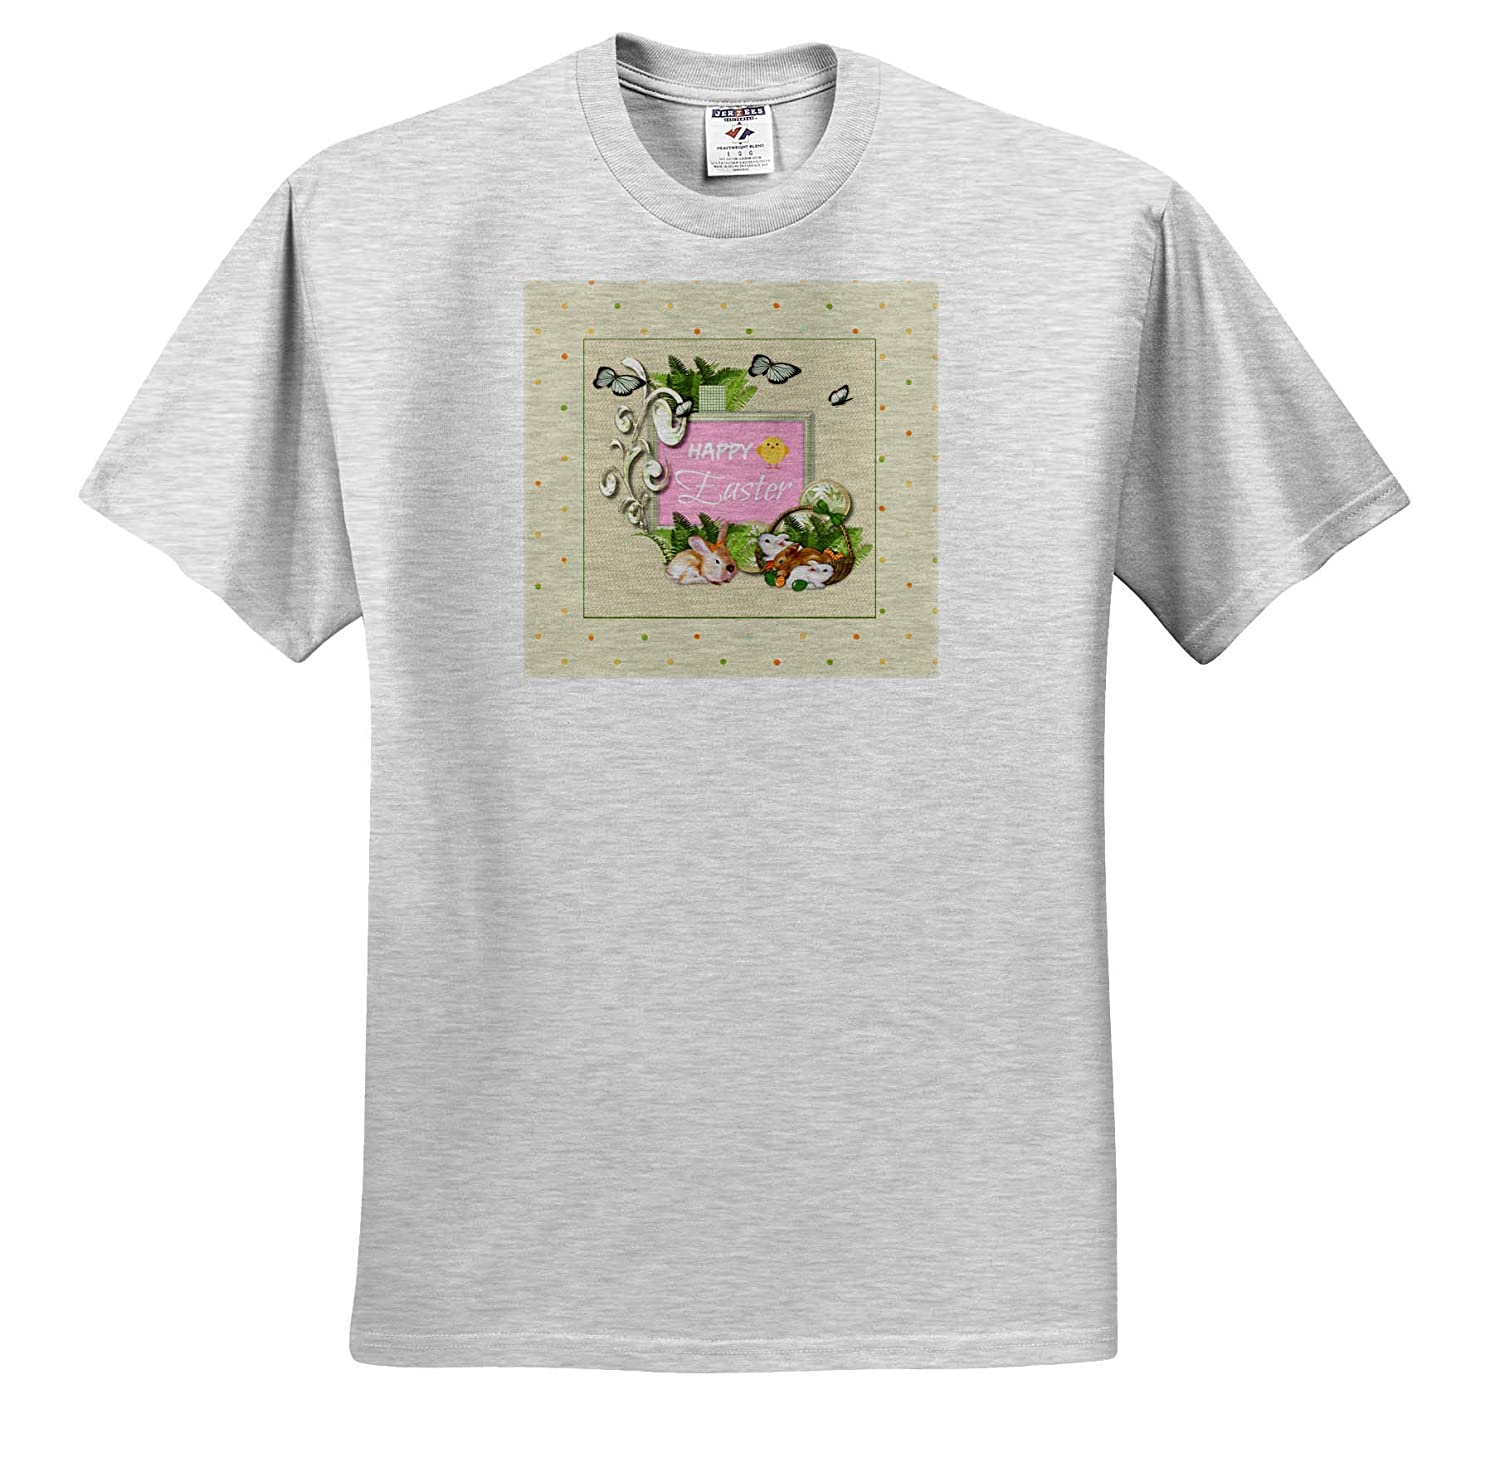 Baskets and Butterfly Eggs Happy Easter Ferns T-Shirts Bunnies 3dRose Beverly Turner Easter Design and Photography